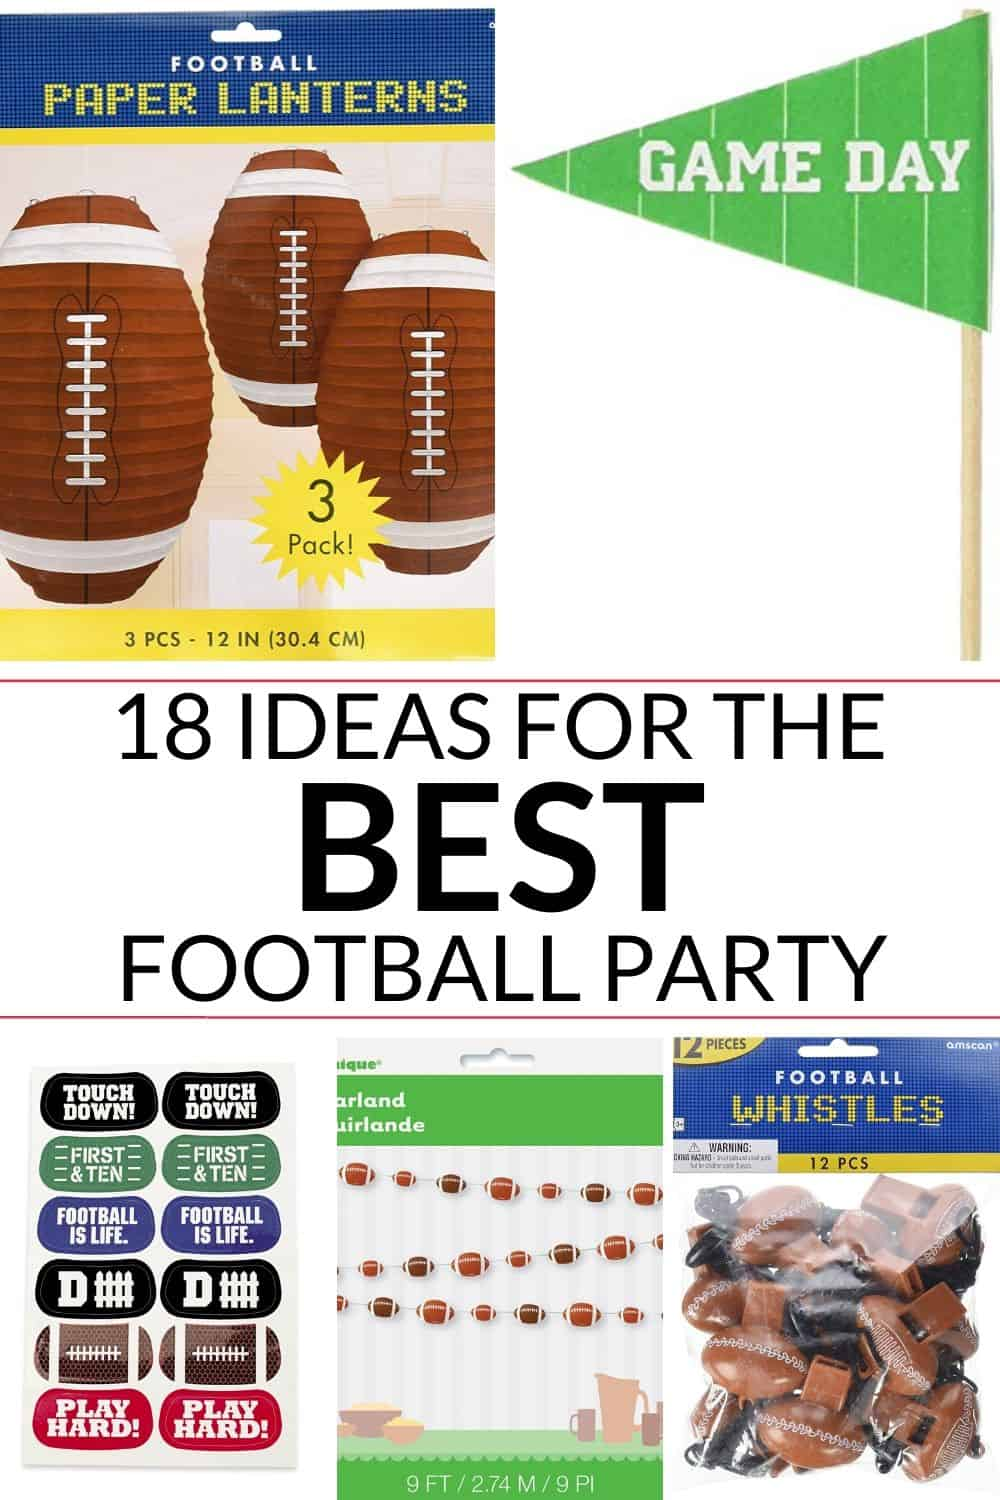 football party ideas listed in the post with the title of the post in the center